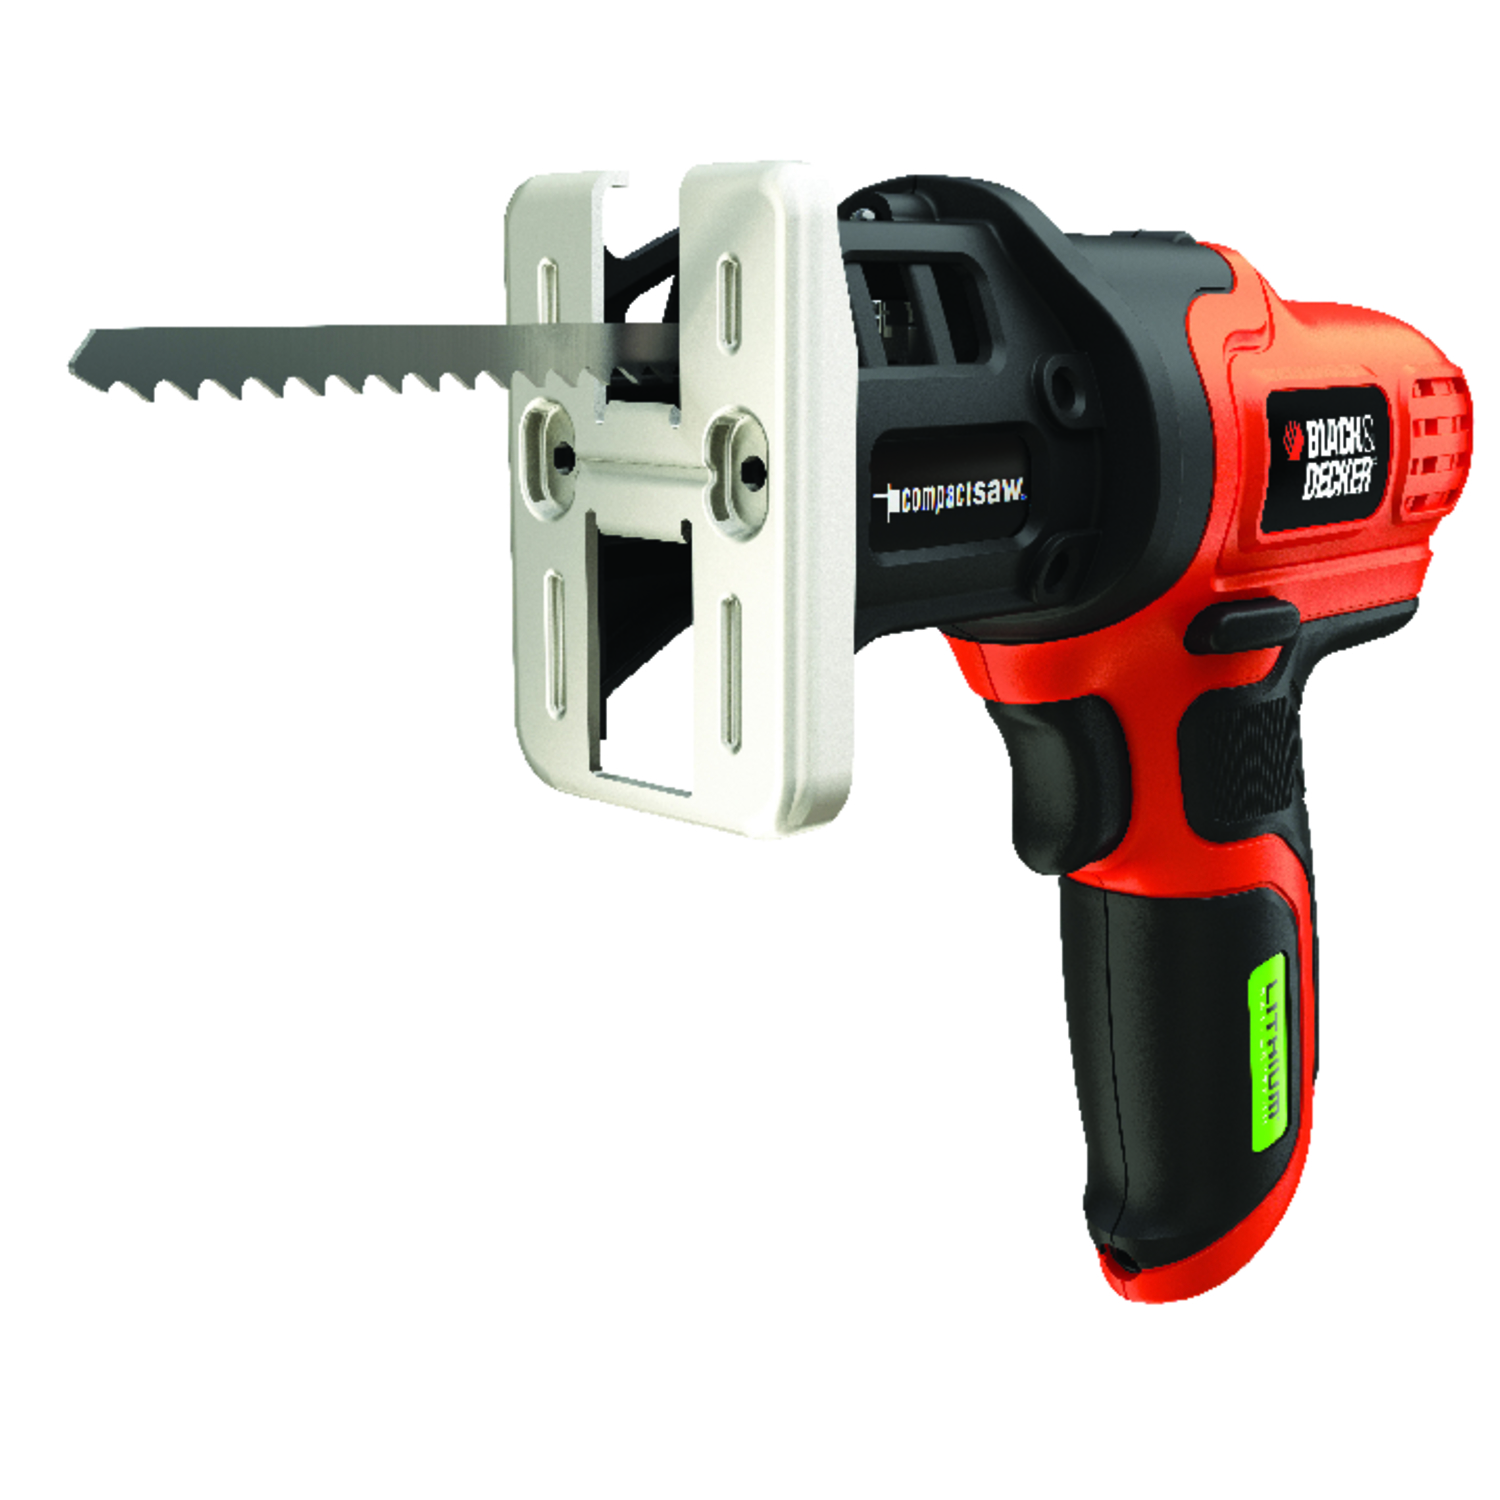 Black and Decker  1/2 in. Cordless  7.2 volt 2050 spm Reciprocating Saw